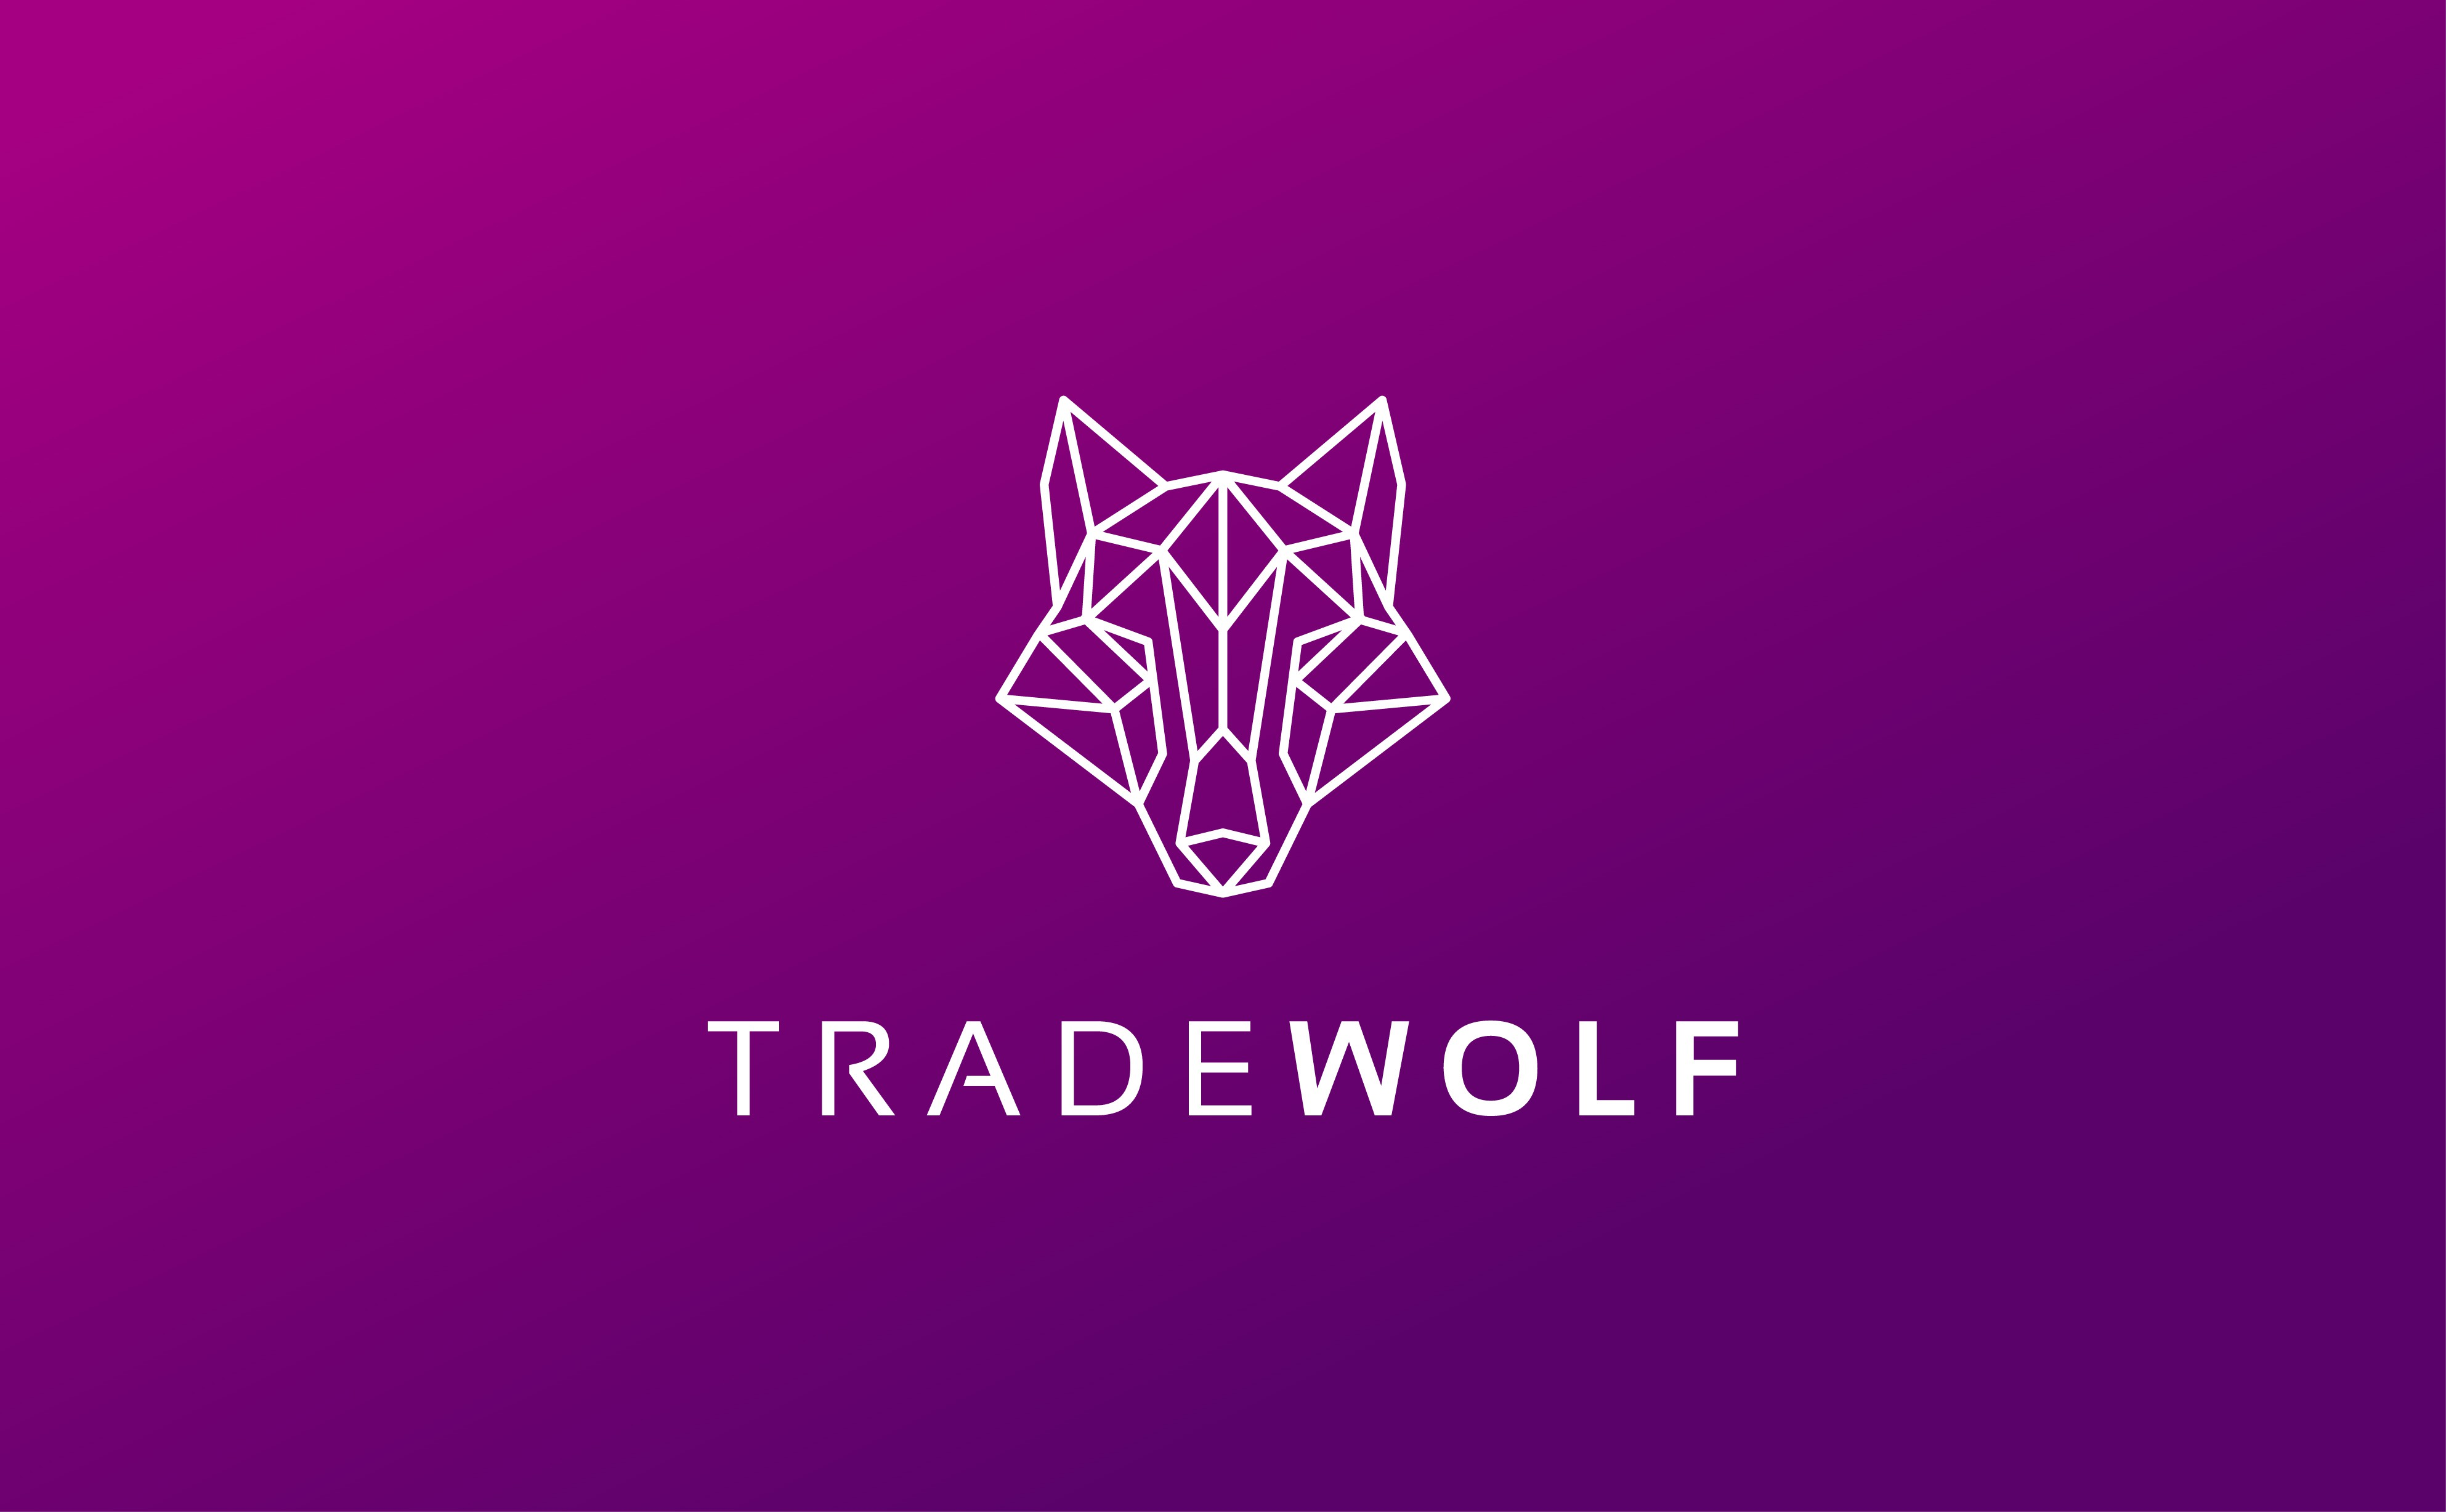 New brand for the trades industry - must love a wolf!